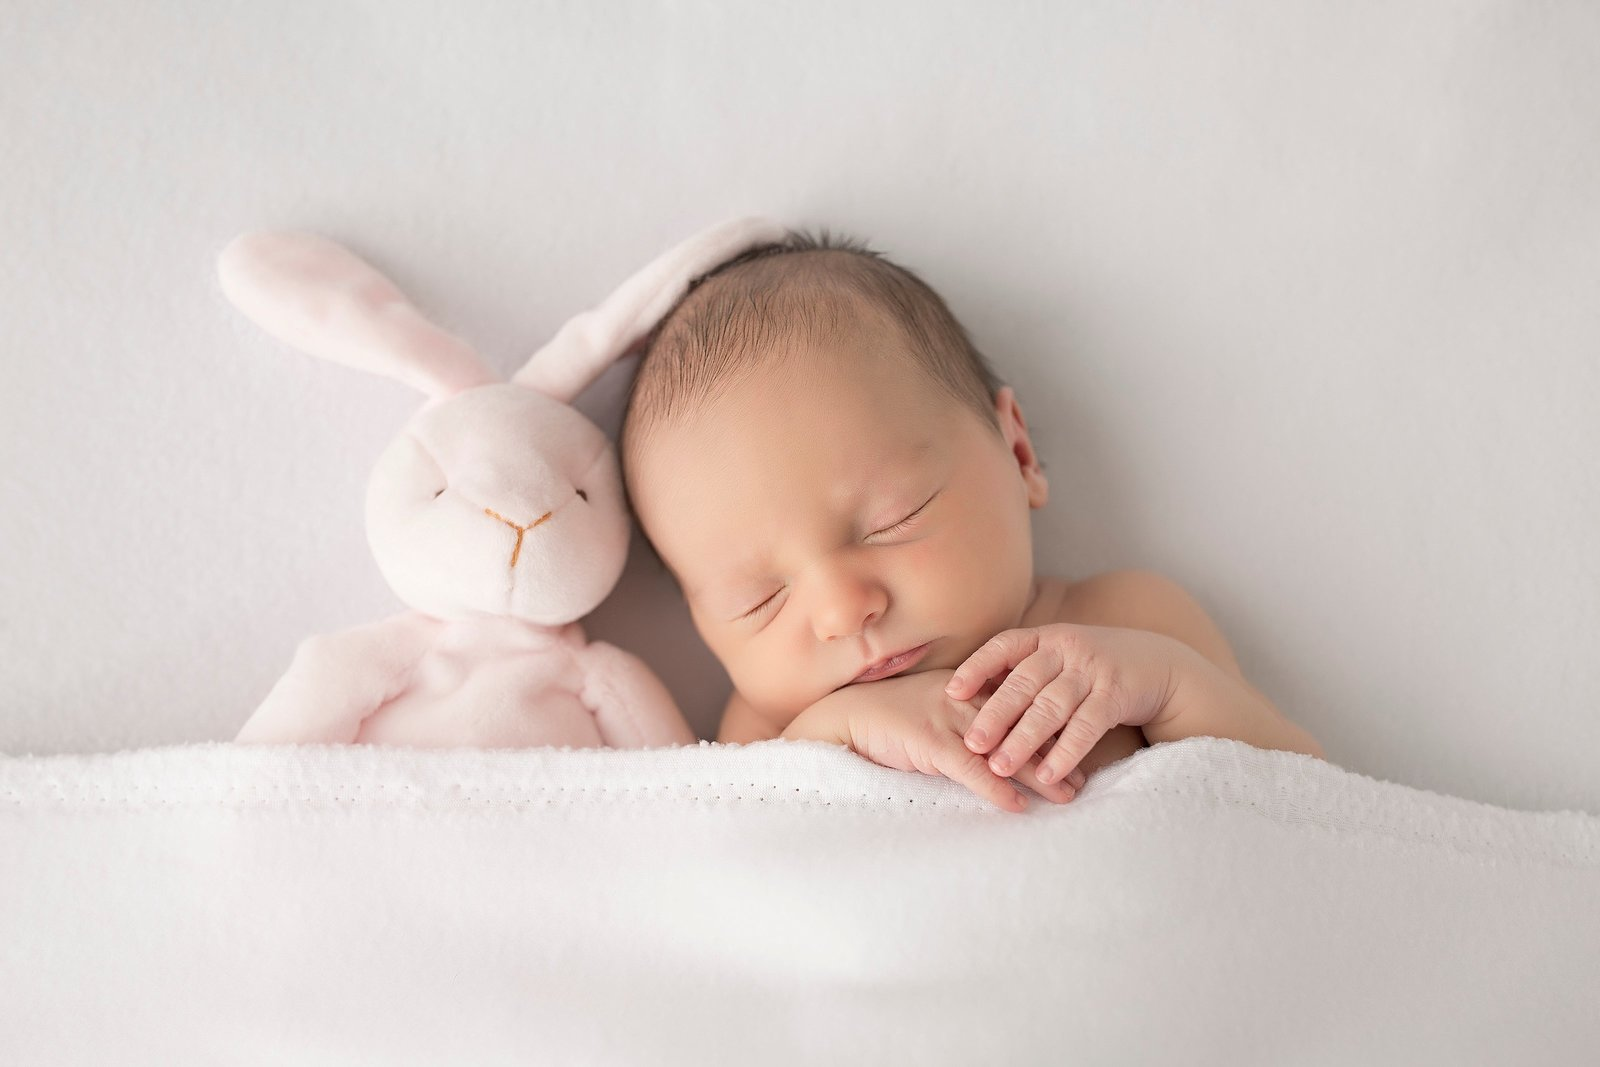 Sleeping baby with bunny